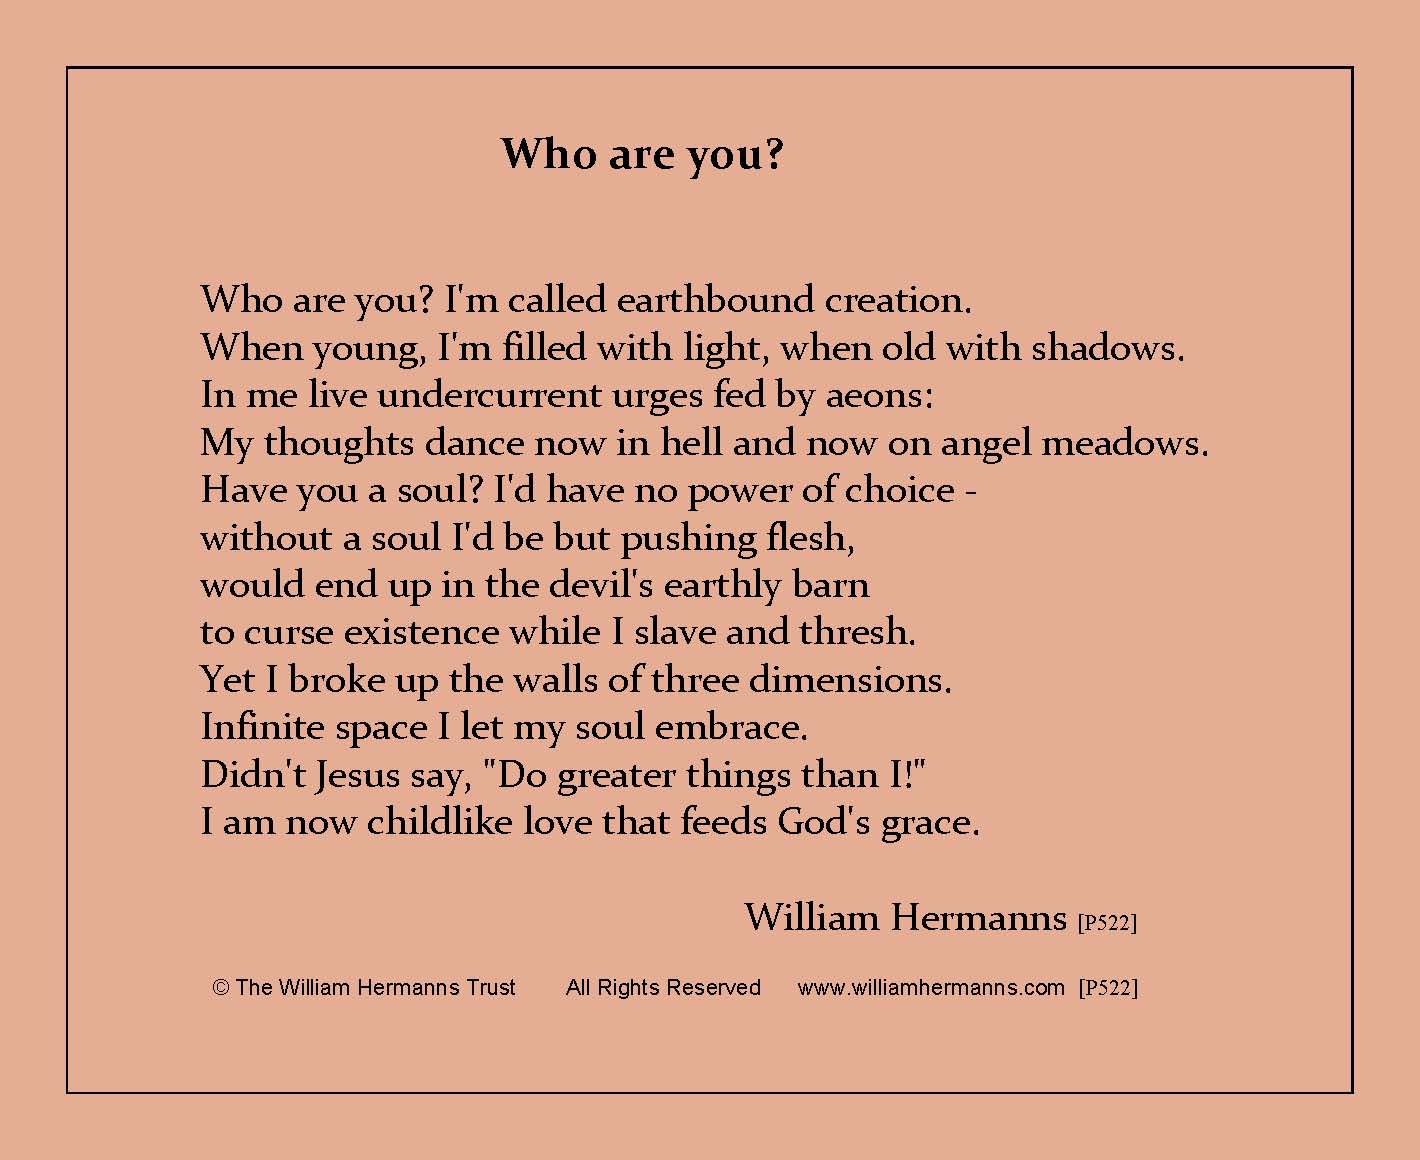 Who are you?  by William Hermanns